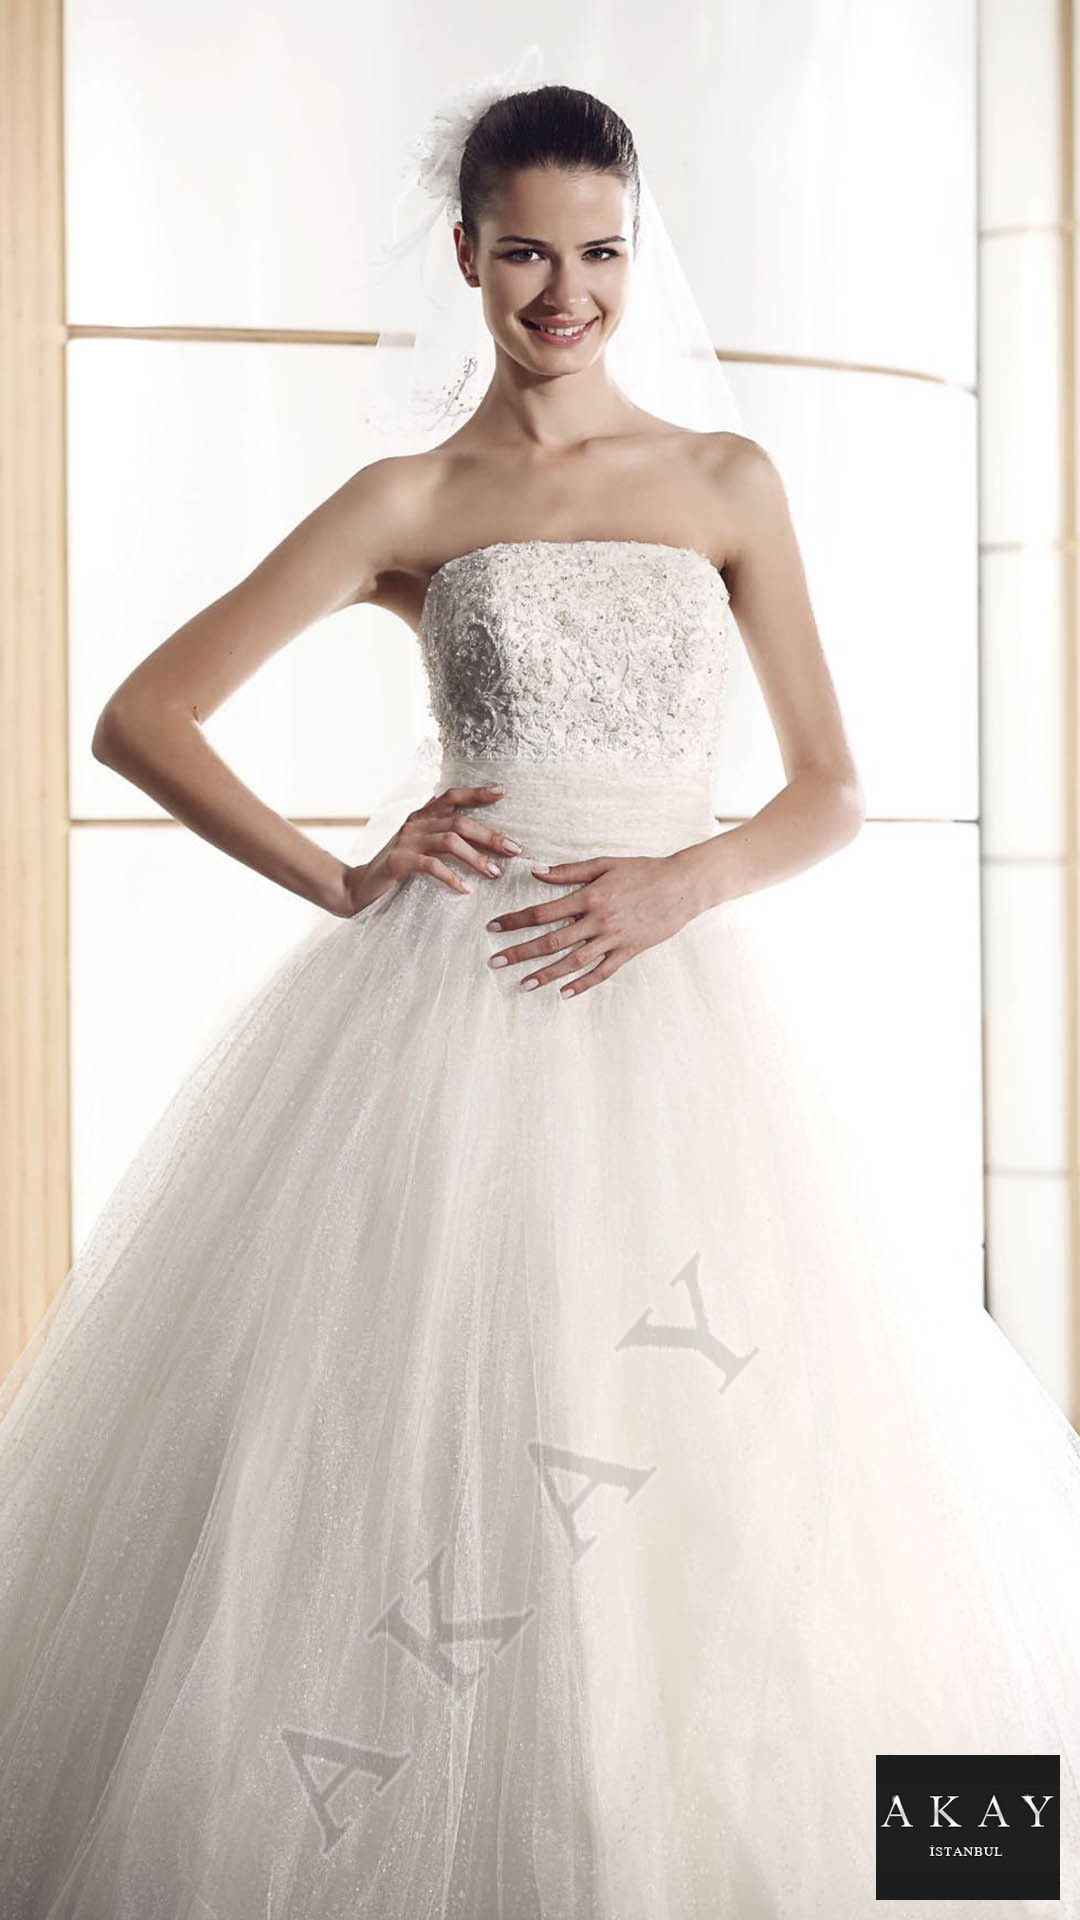 akay wedding dresses collection 2014 turkish fashionnet